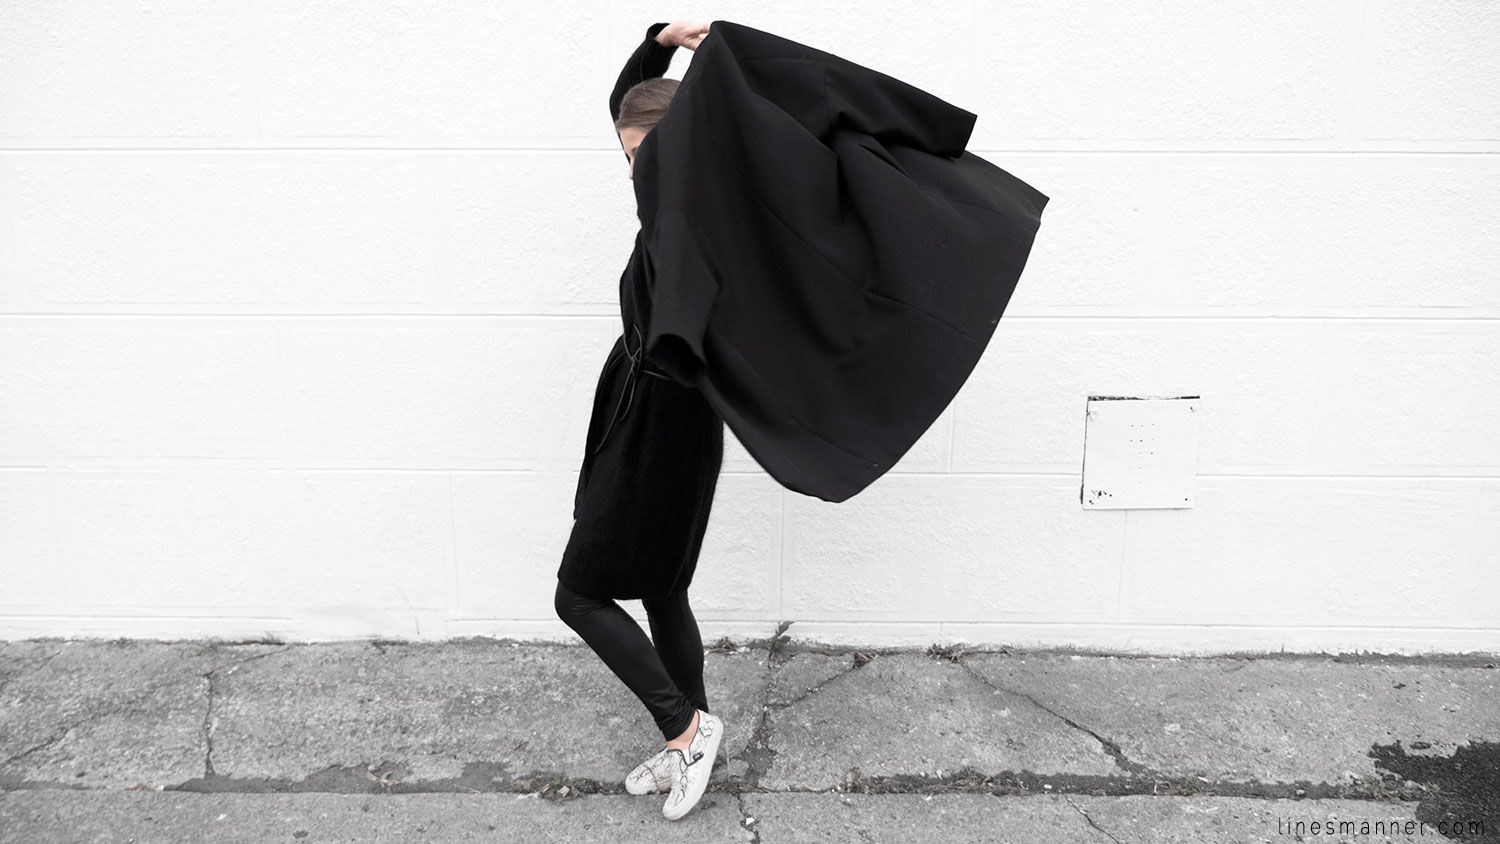 Lines-Manner-Timeless-Comfort-Essentials-Monochrome-Trend-Minimal-Textures-Oversized-Warm-Fall-Leather-Details-Simplicity-Modern-Basics-Outfit-Structure-6